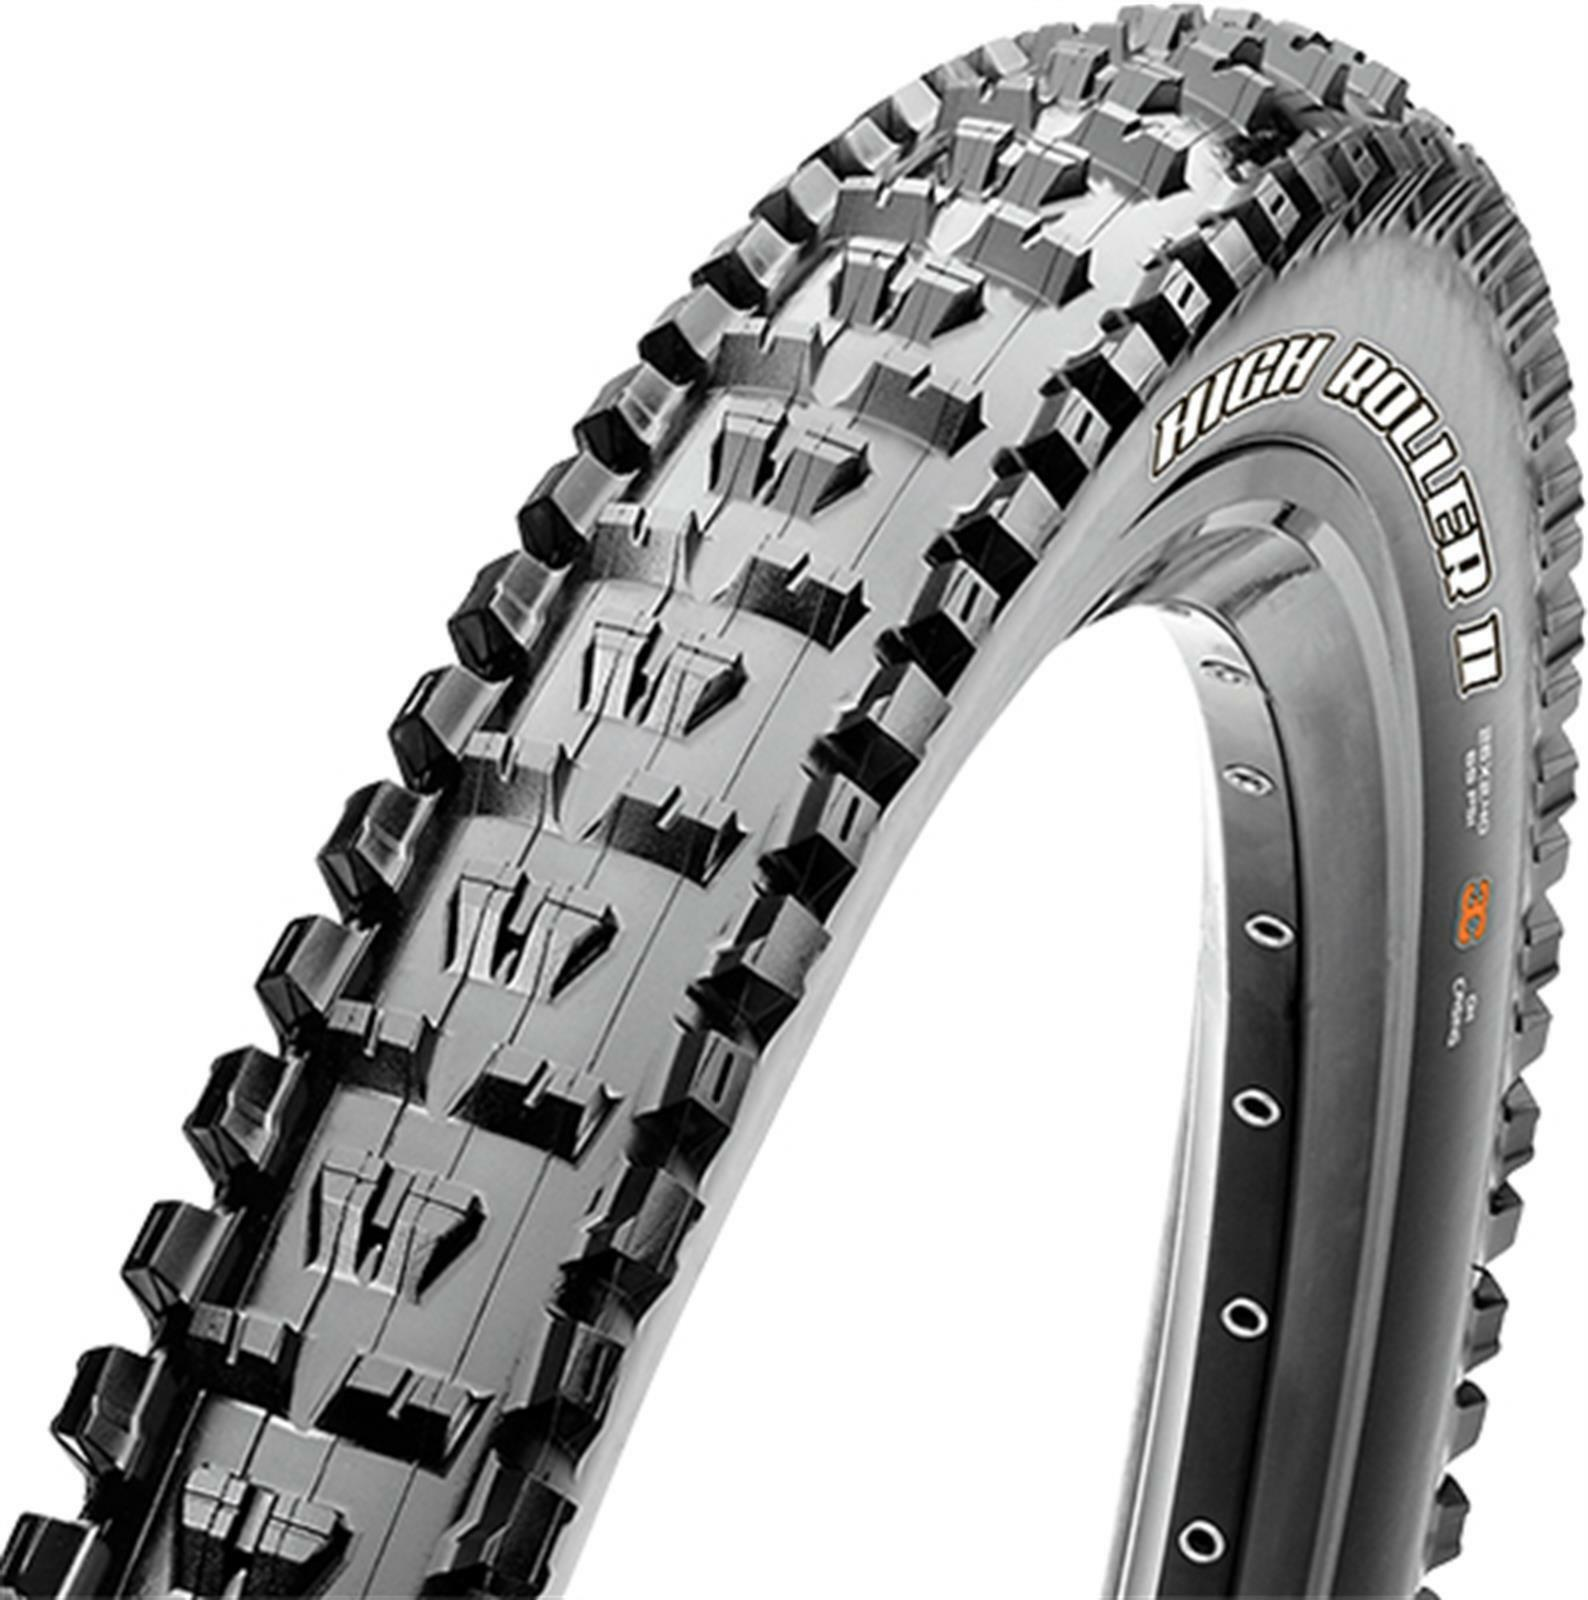 MAXXIS HIGH ROLLER II 27.5X 2.30 FOLDING 3C MAX TERRA  TR DD TB85924600  wholesale prices